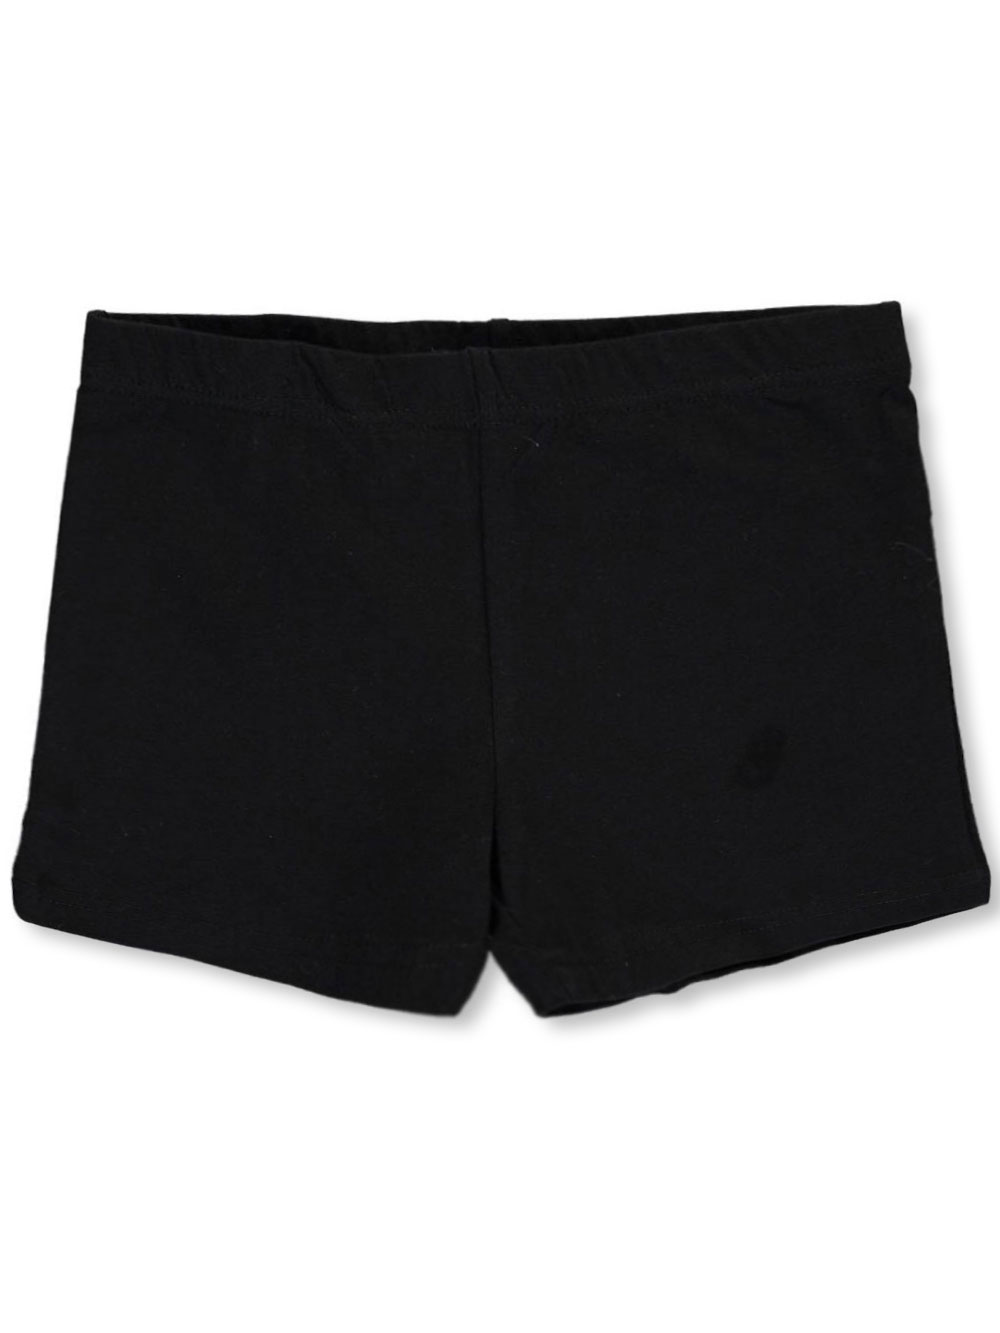 Size 7 Shorts for Girls